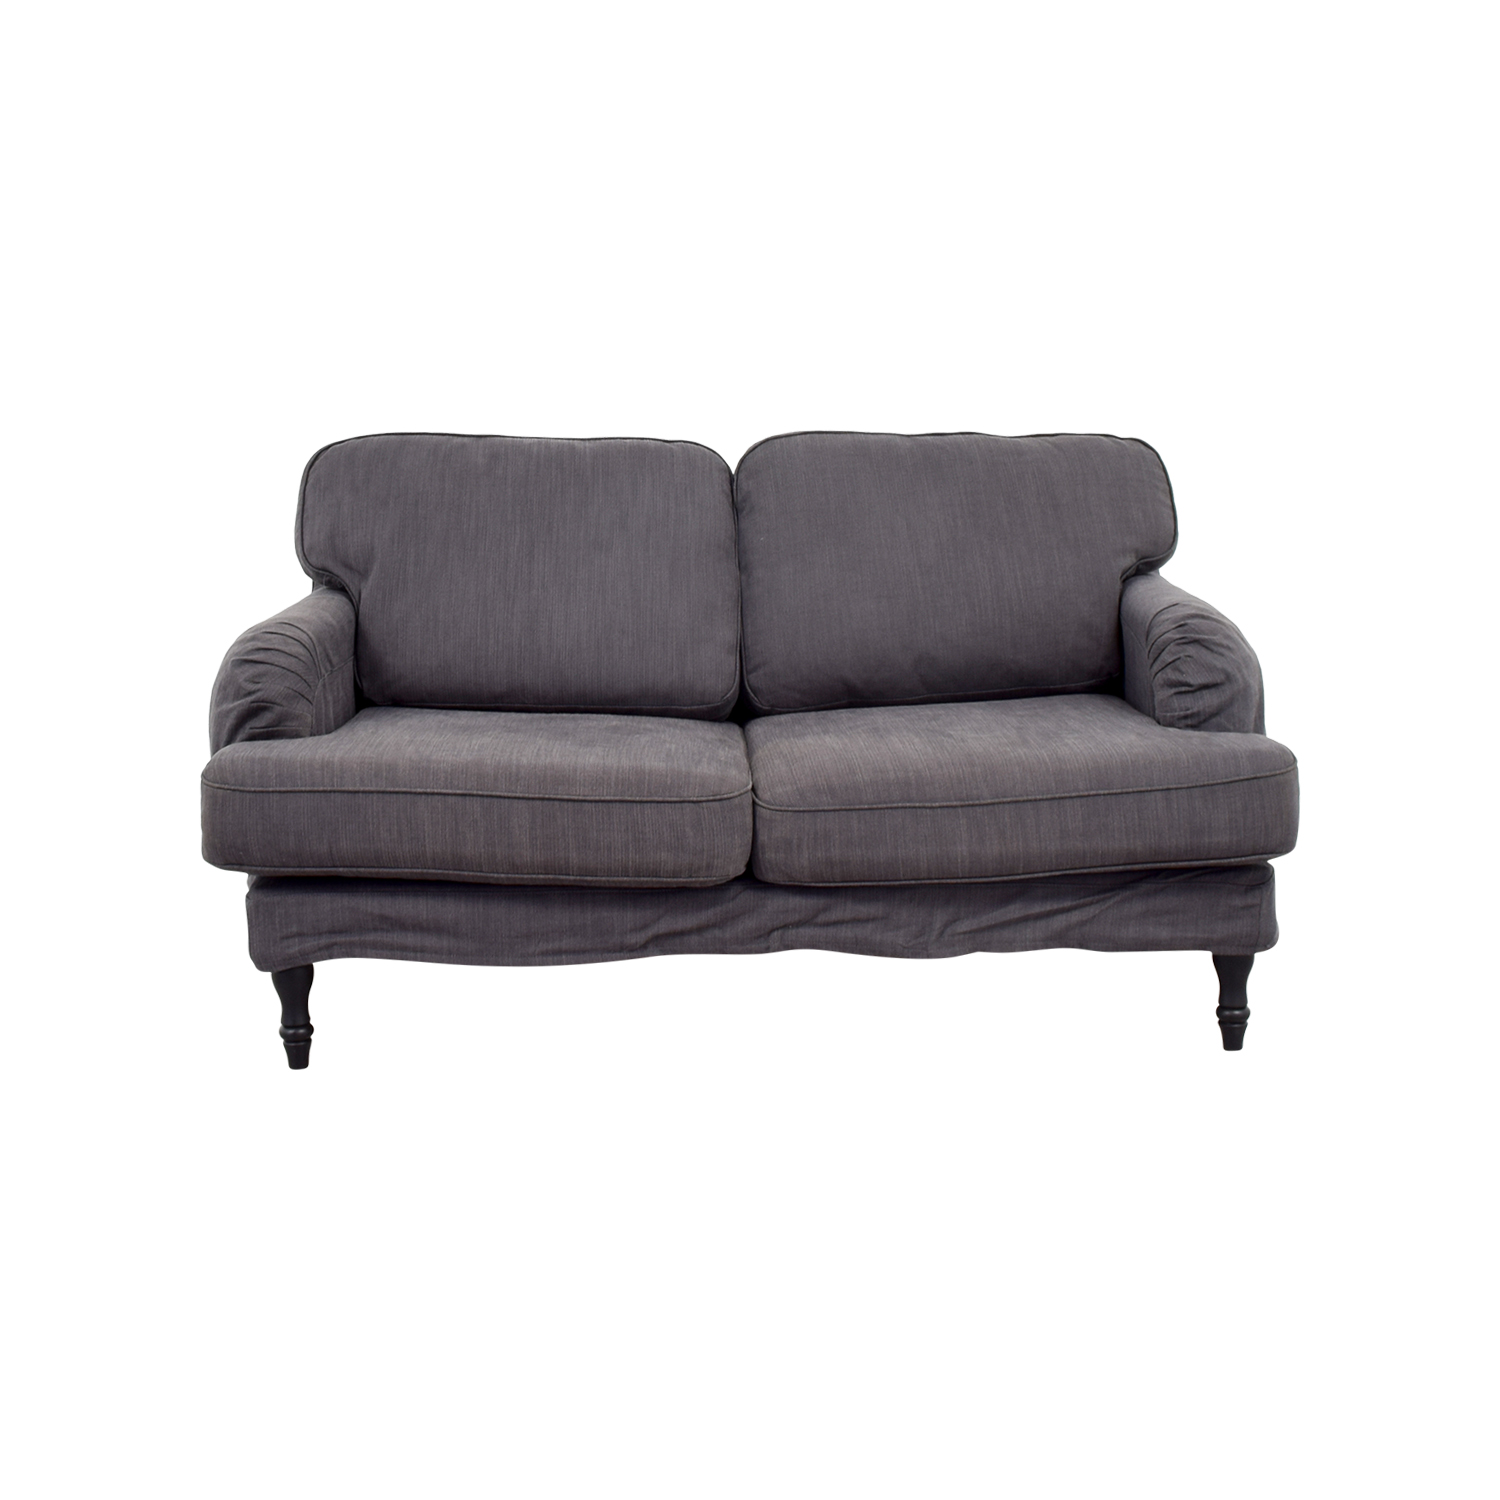 IKEA IKEA Stocksund Grey Loveseat nj